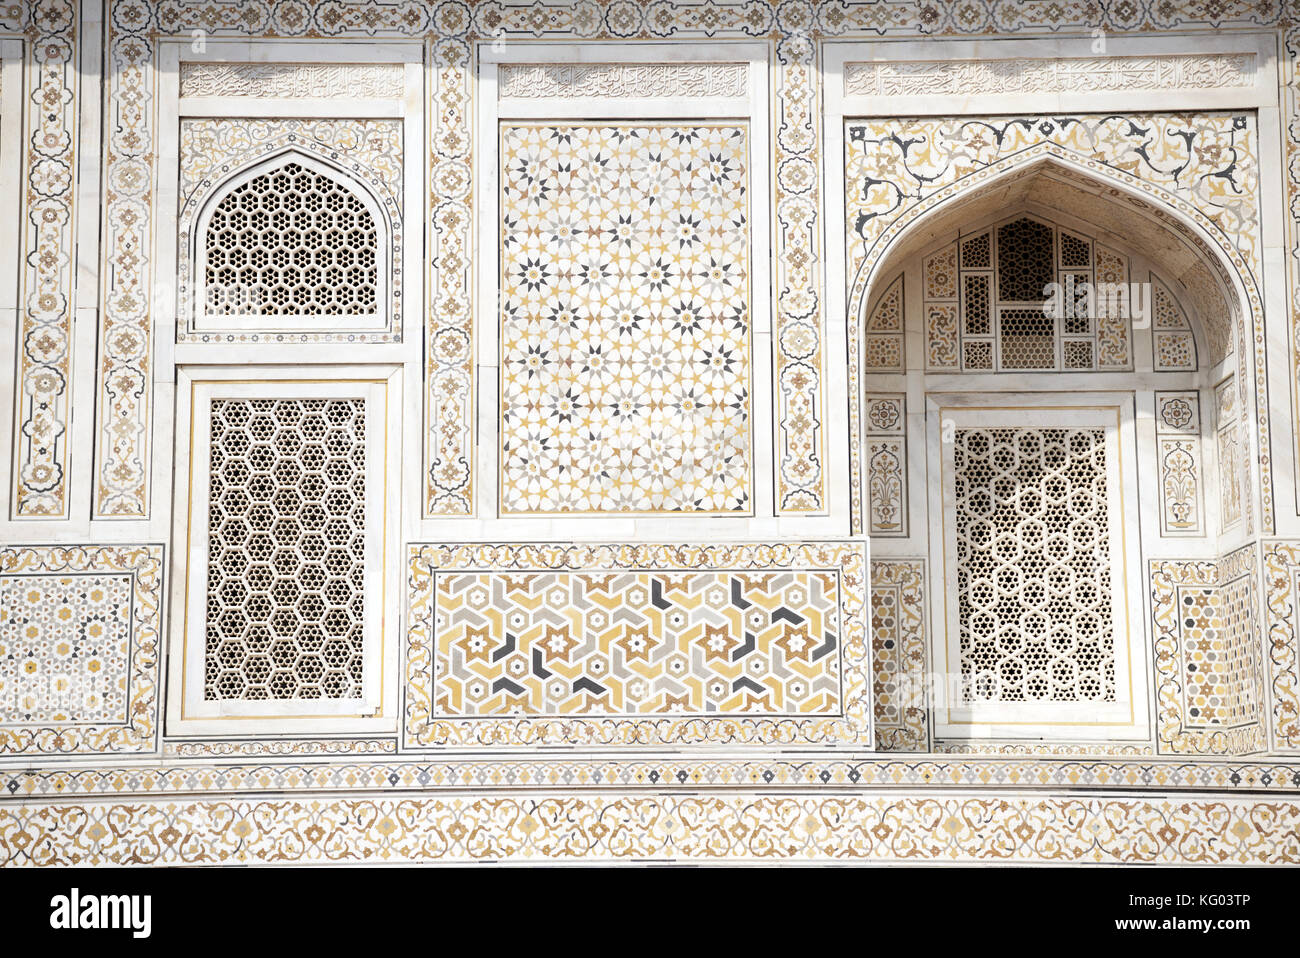 Decorations at the Tomb of Itimad-ud-Daulah in Agra Stock Photo